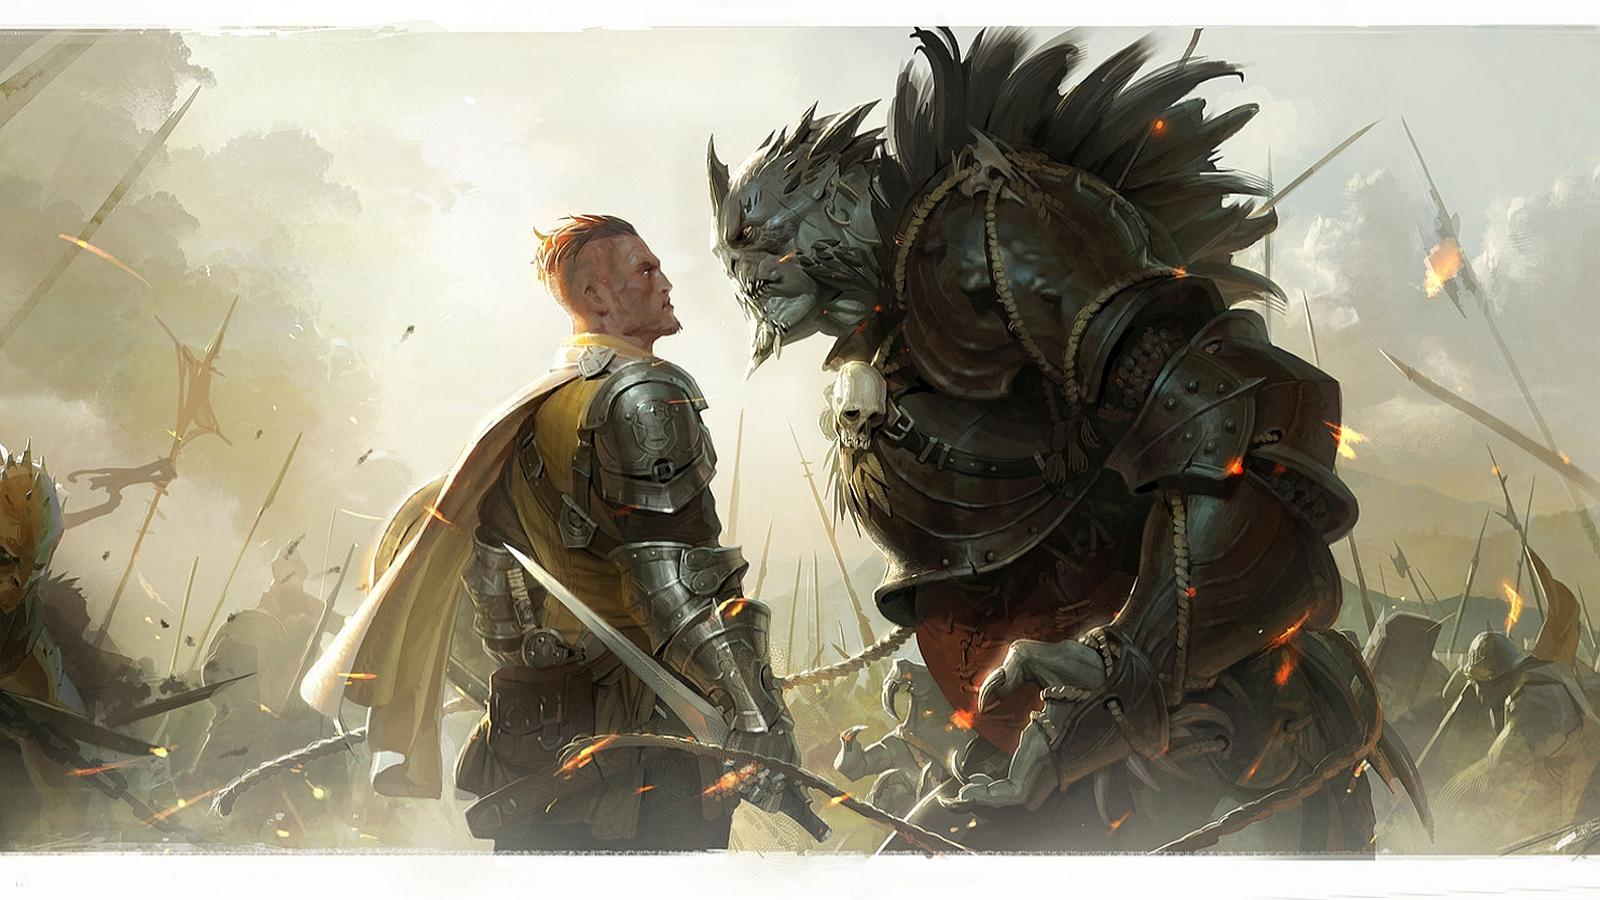 man vs orc   146397   High Quality and Resolution Wallpapers on 1600x900